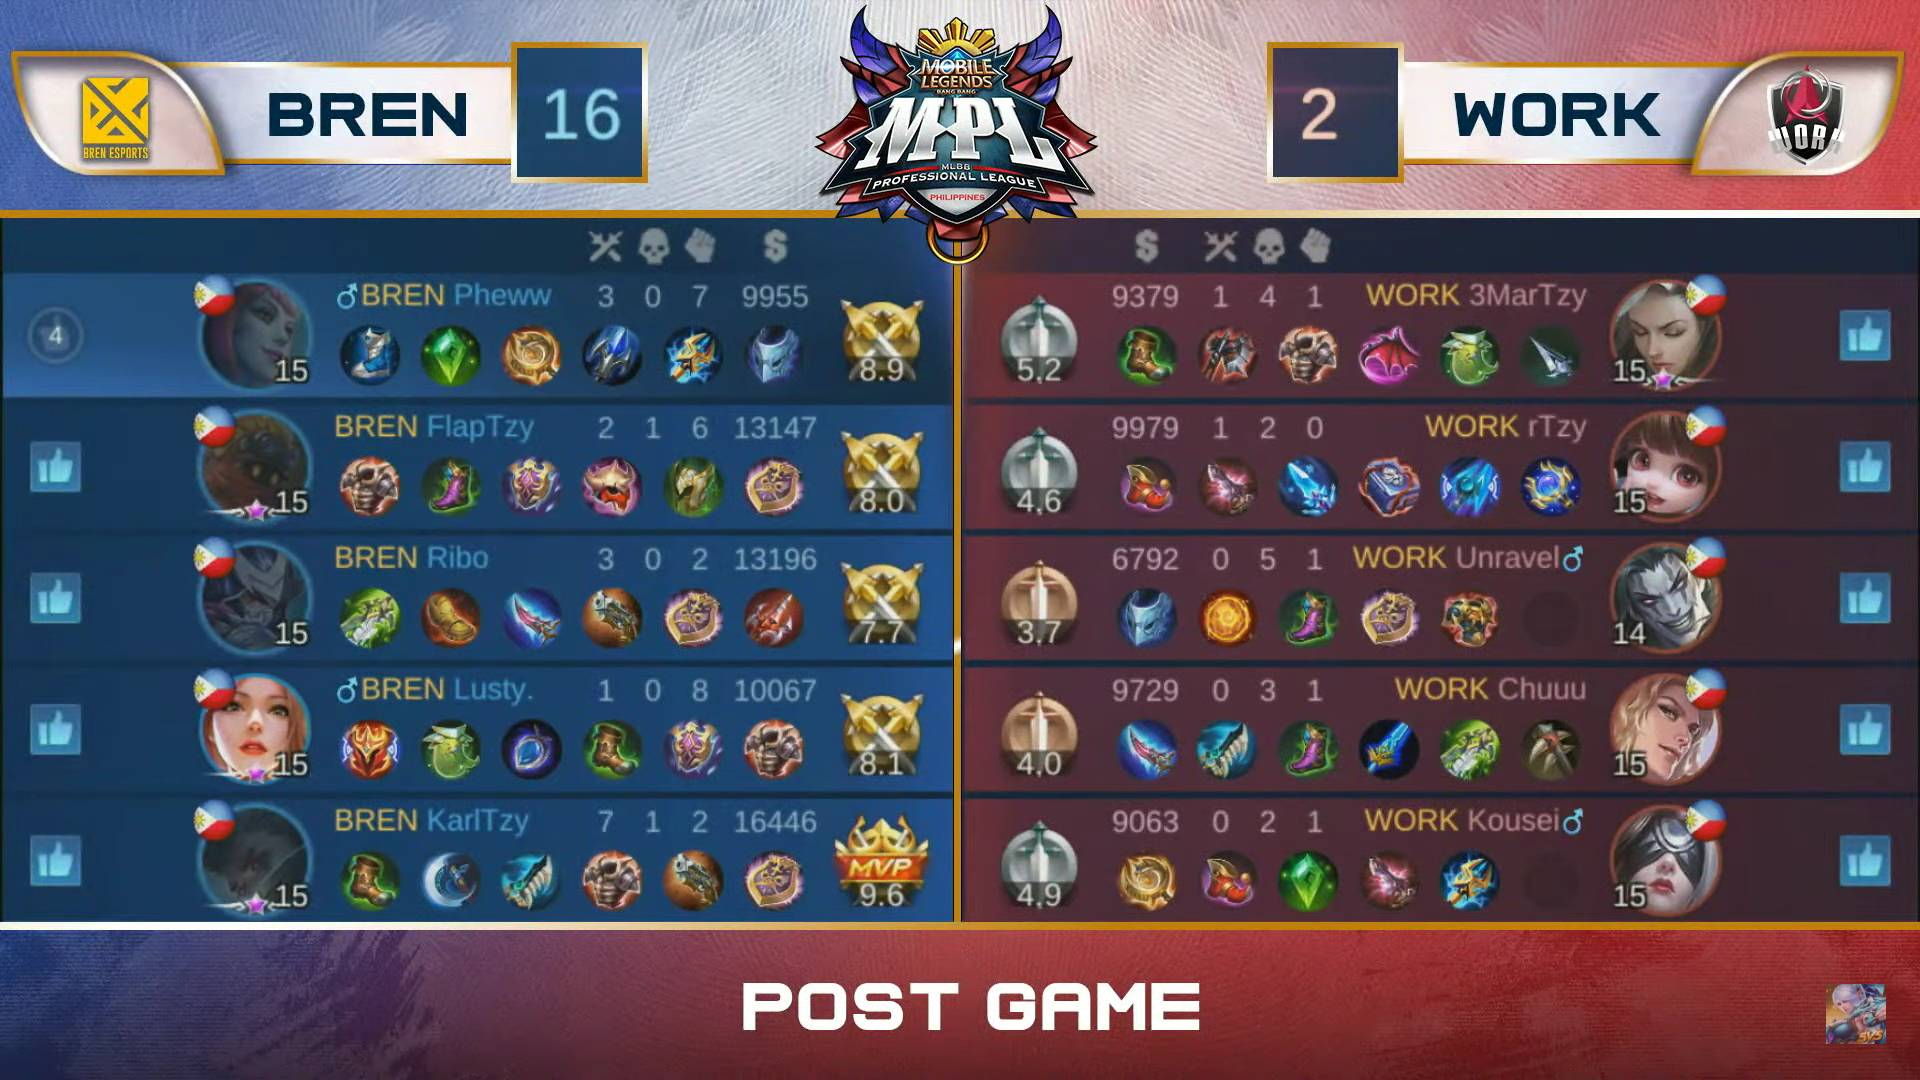 MPL-PH-Season-7-Bren-def-Work-Auster-Game-1 Lusty's clutch use of Shadow Mask lifts Bren past Work Auster anew in MPL PH ESports Mobile Legends MPL-PH News  - philippine sports news